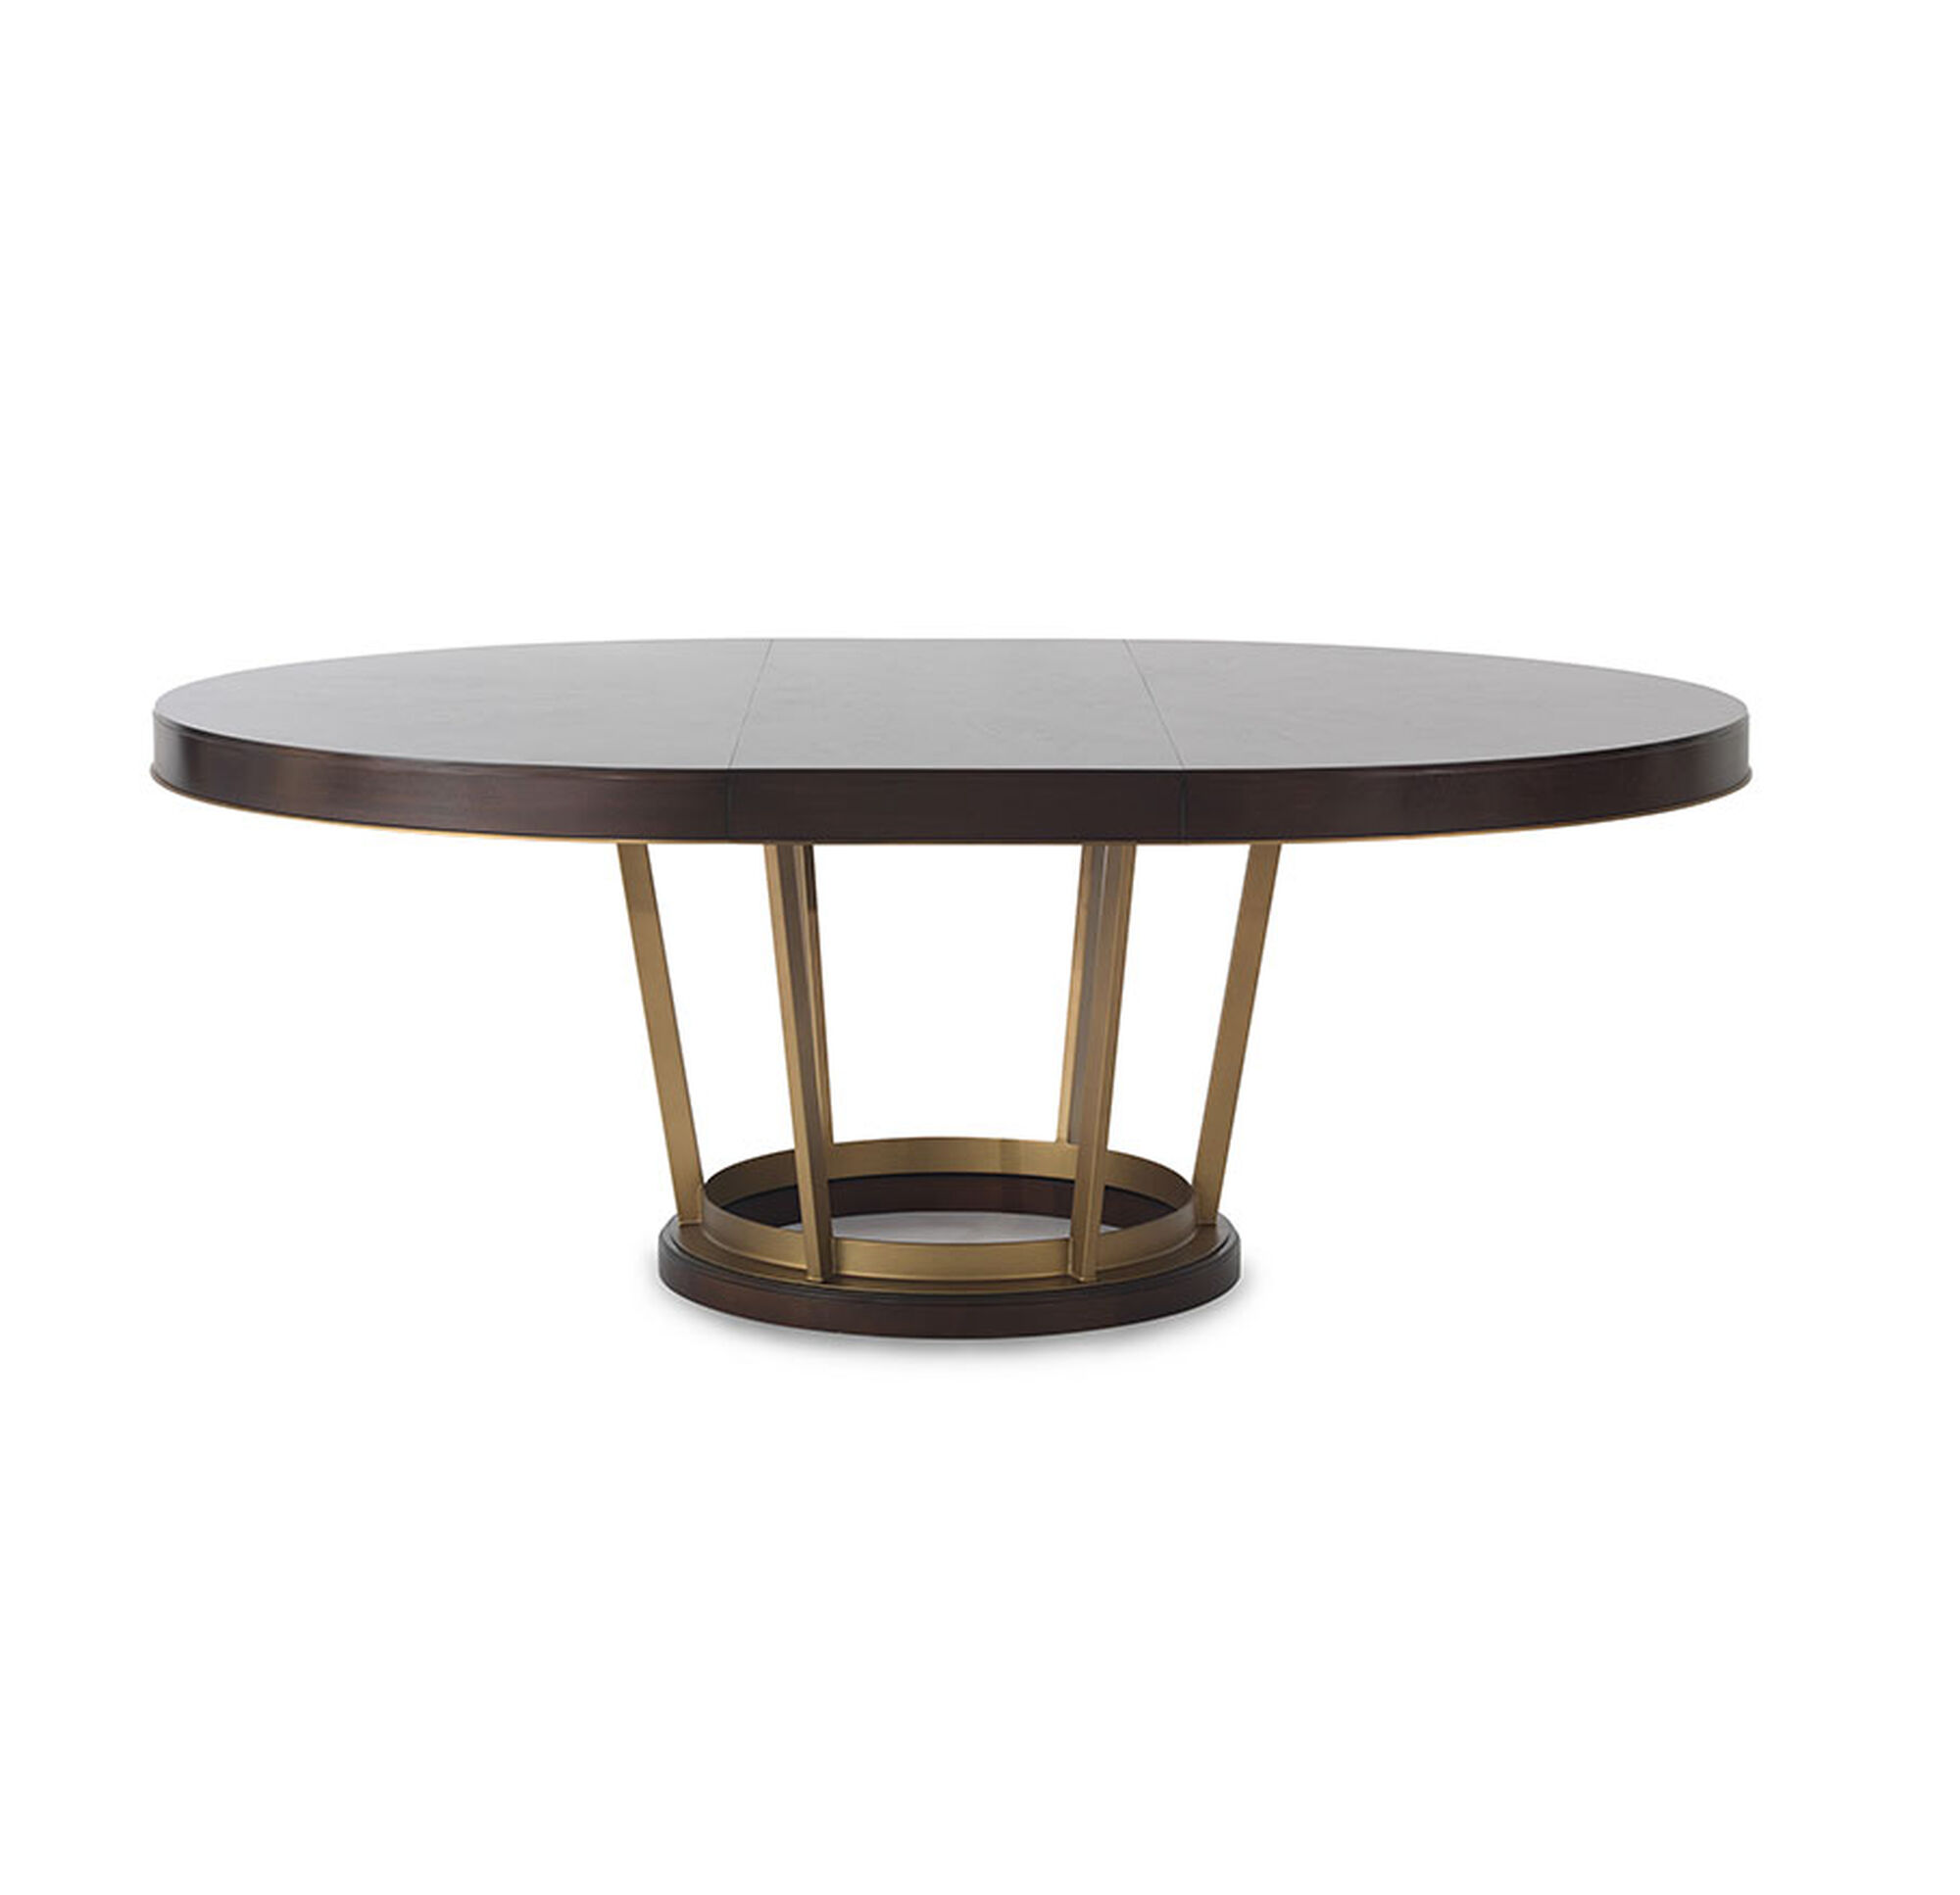 DELANEY DINING TABLE : 10897 DNTAV1 from www.mgbwhome.com size 2000 x 1933 jpeg 95kB